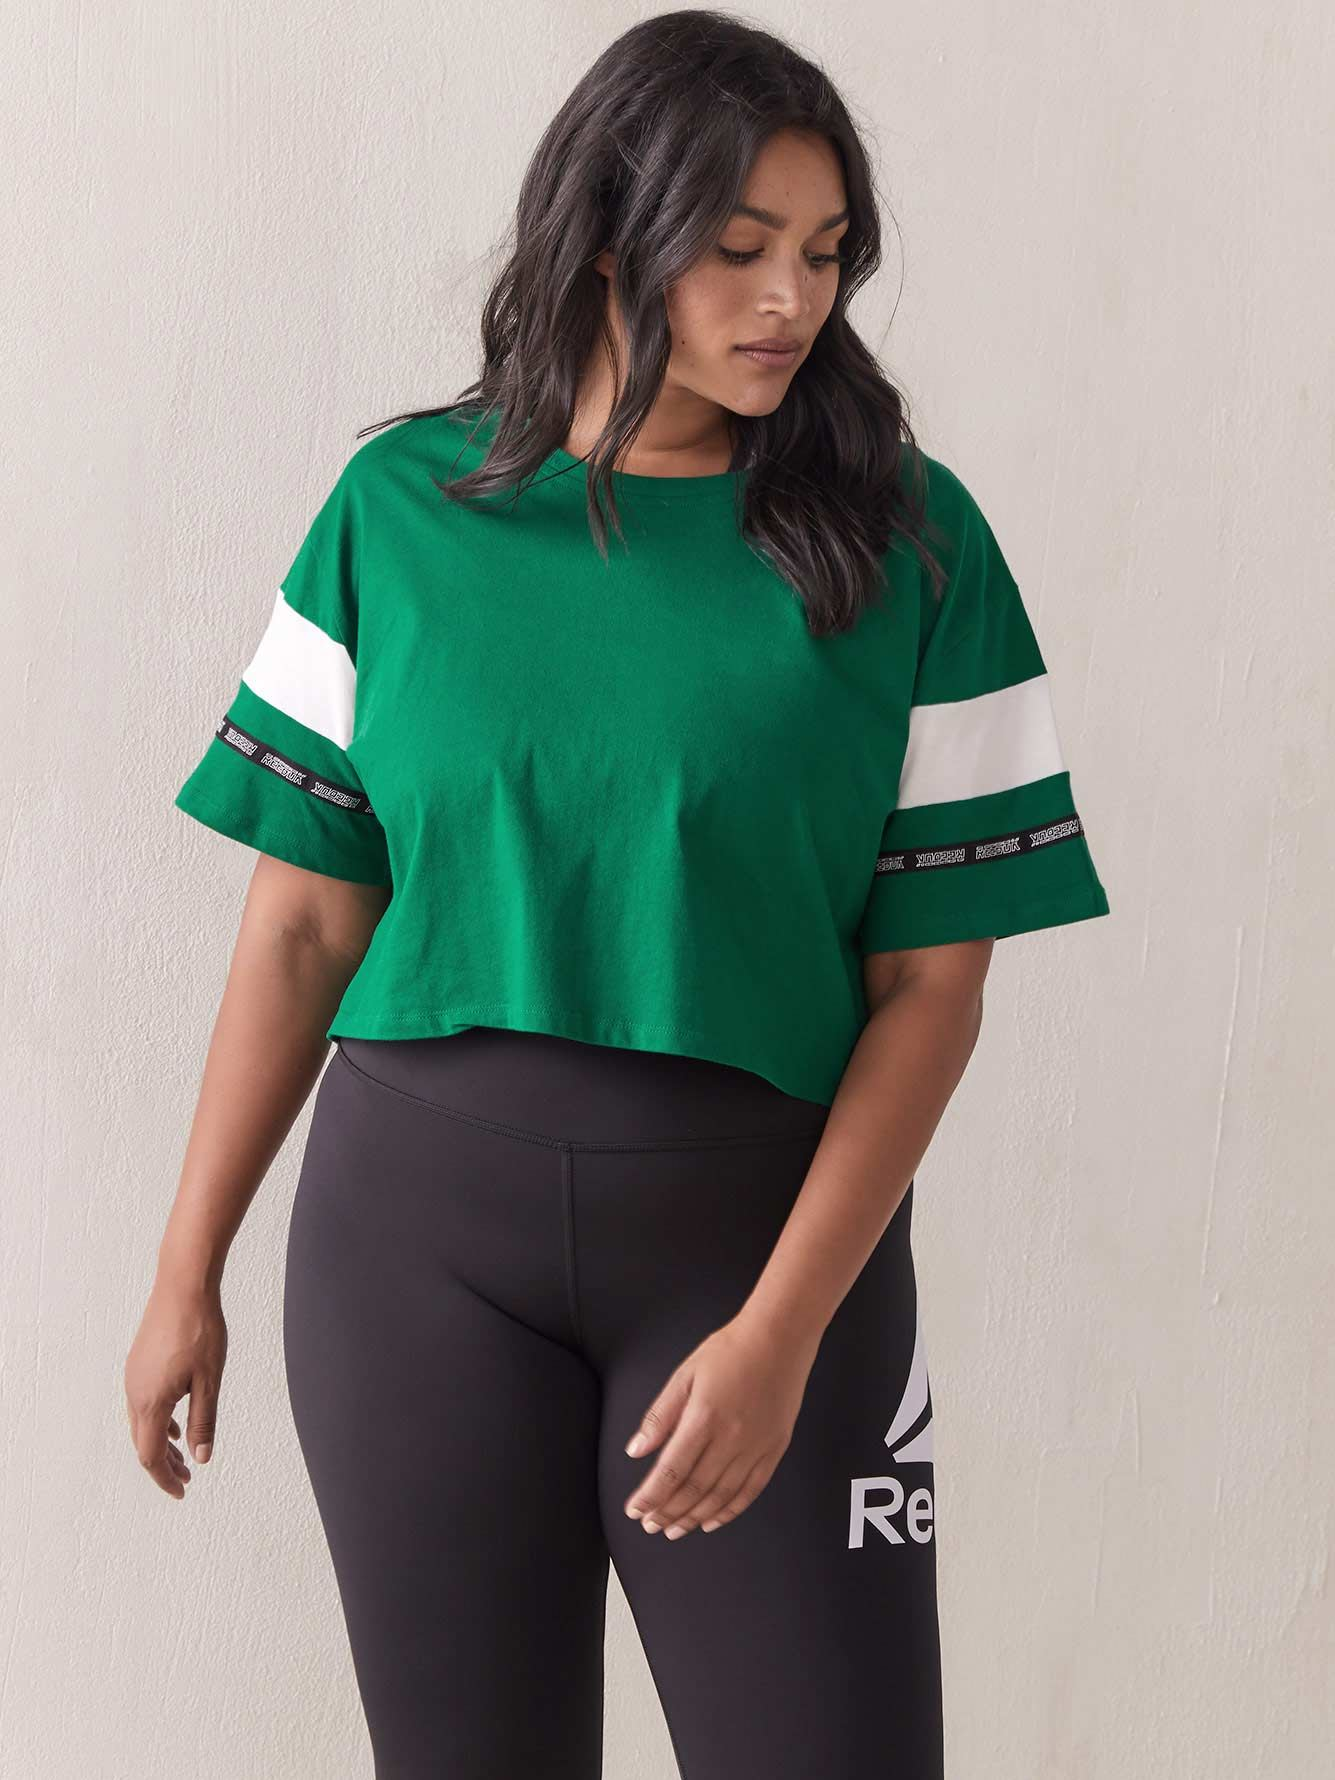 WOR MYT Cropped Green T-Shirt - Reebok